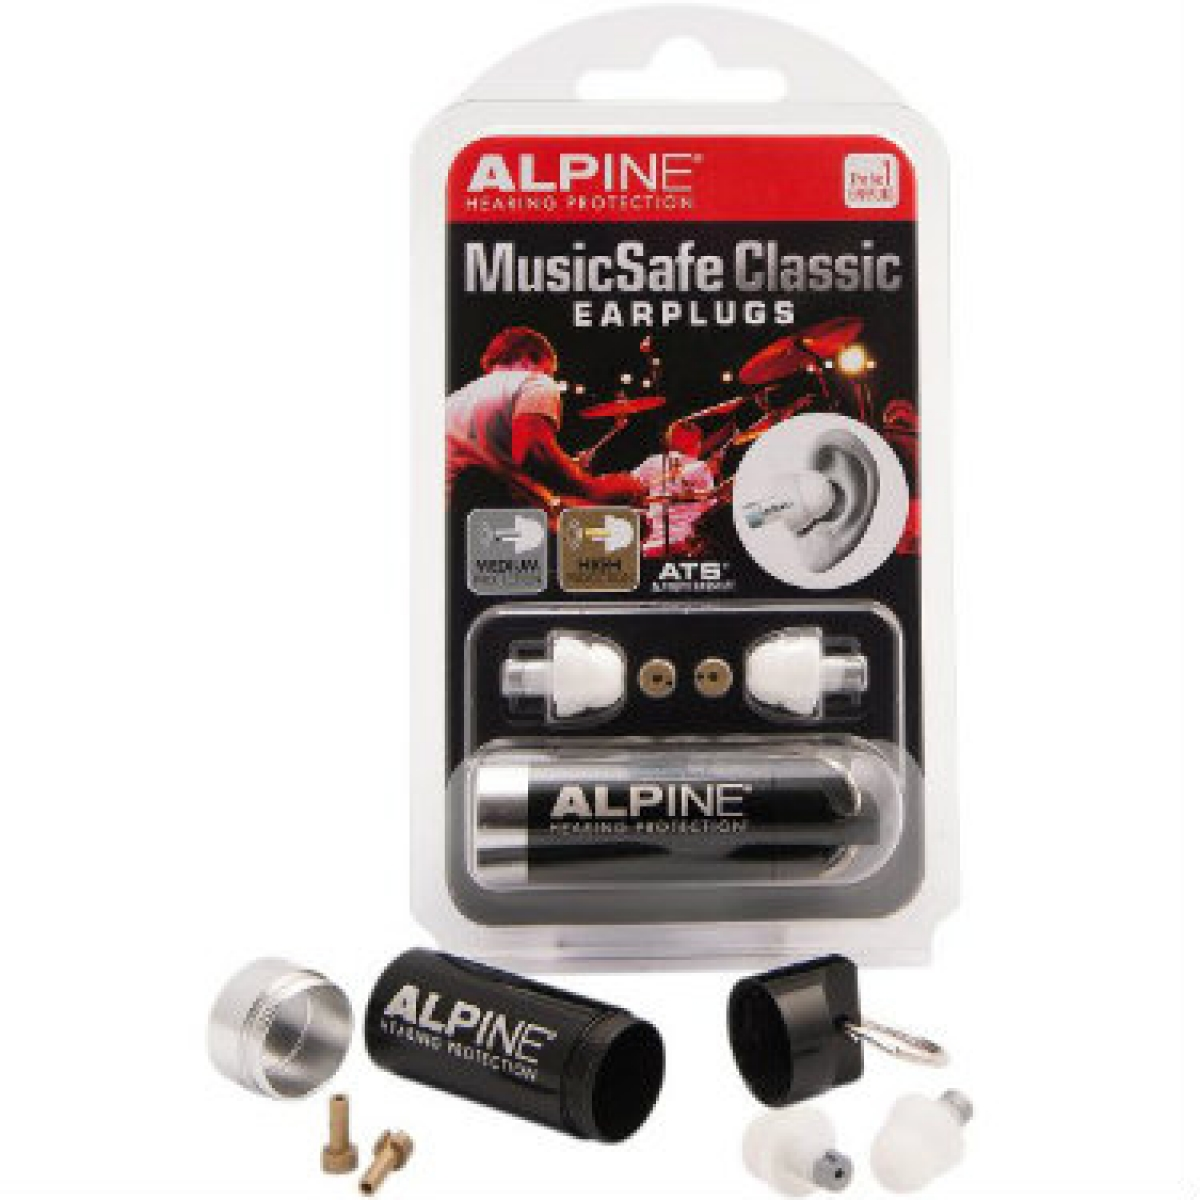 with Filters ALPINE MUSIC SAFE Professional Musicians Ear Plugs